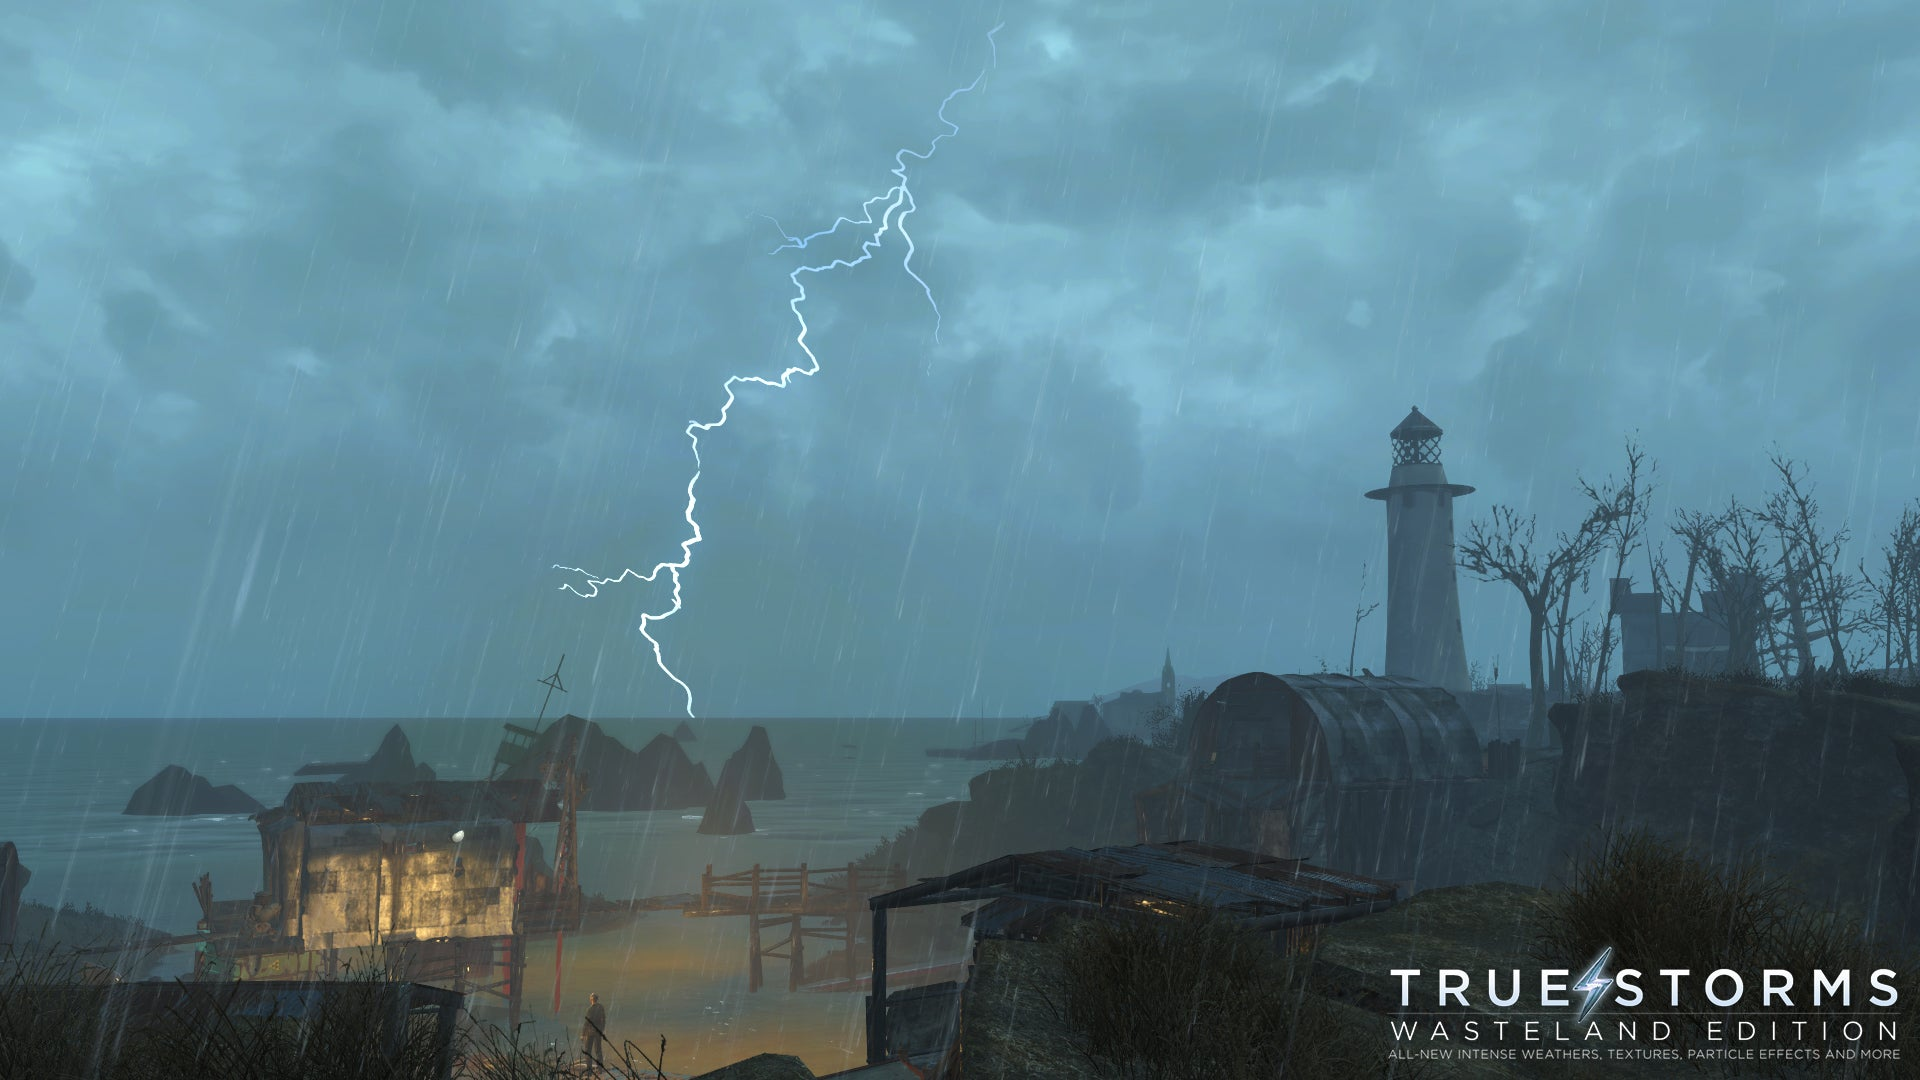 The Most Popular Fallout 4 Mod Right Now Is For...Extreme Weather